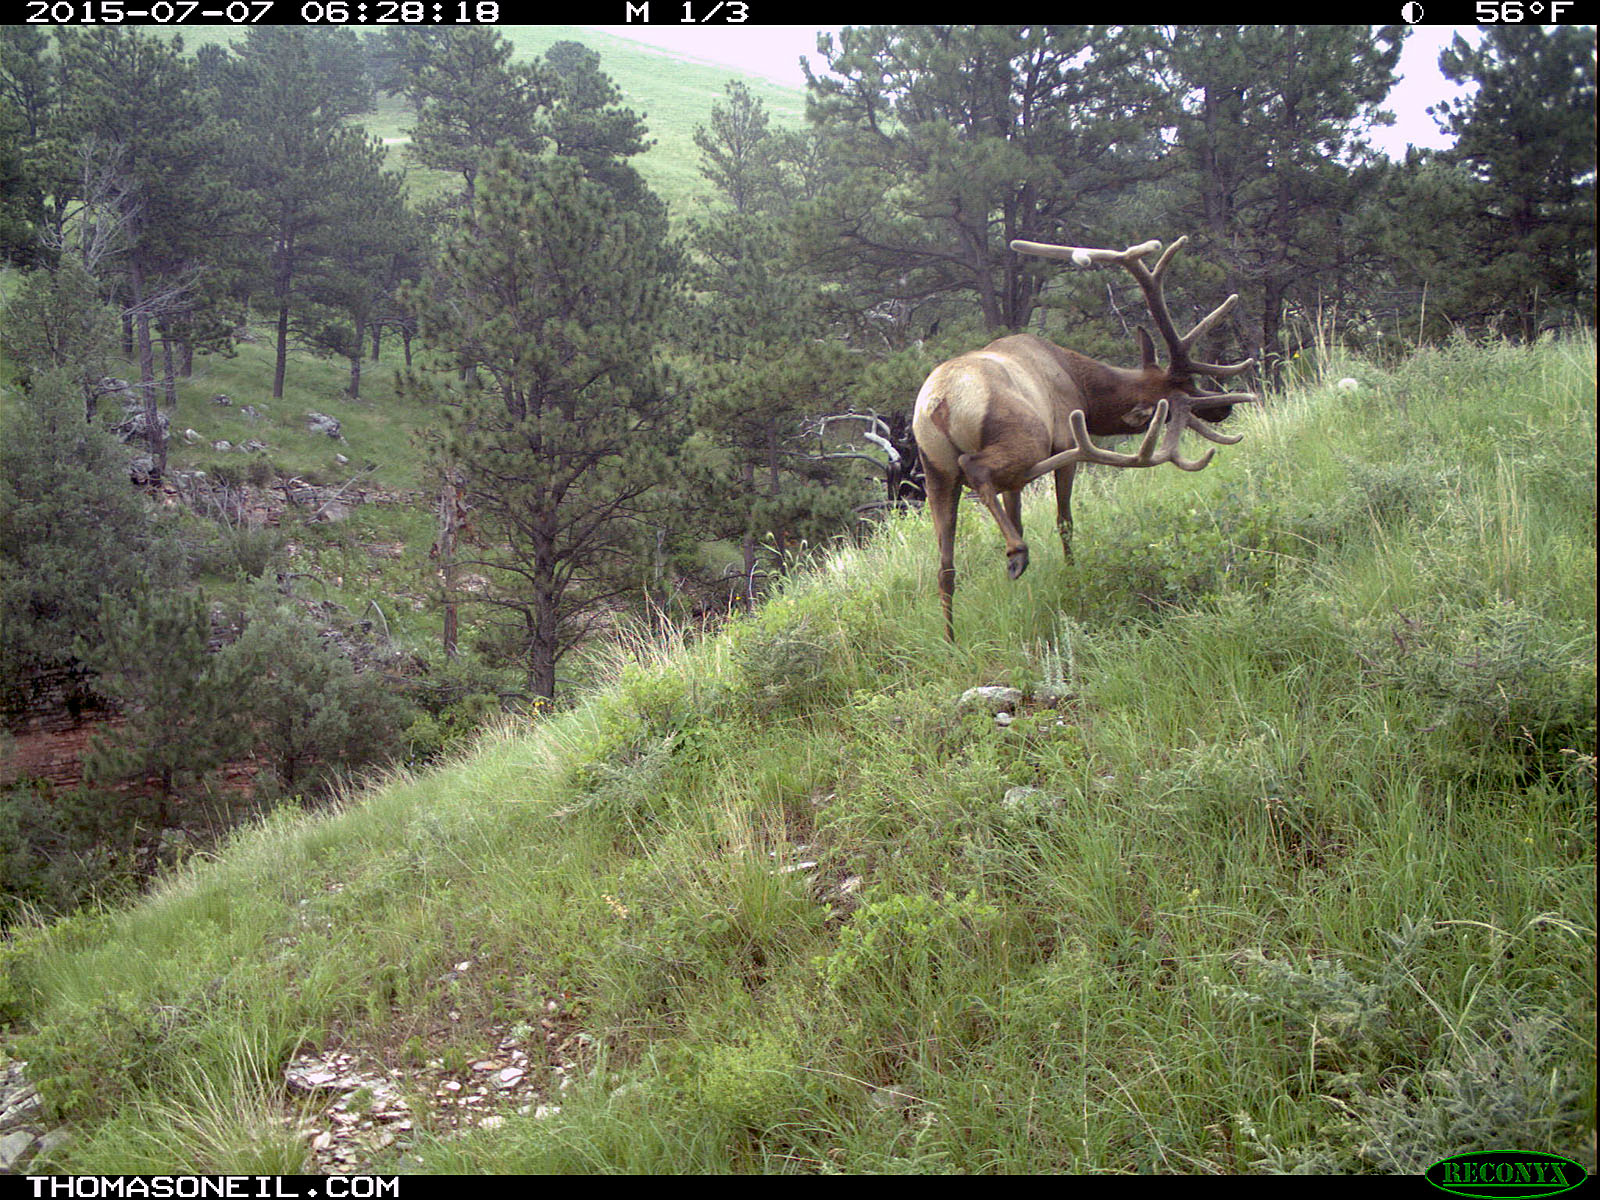 Elk scratching sequence on trailcam, 5 of 7, Wind Cave National Park, July 2015,